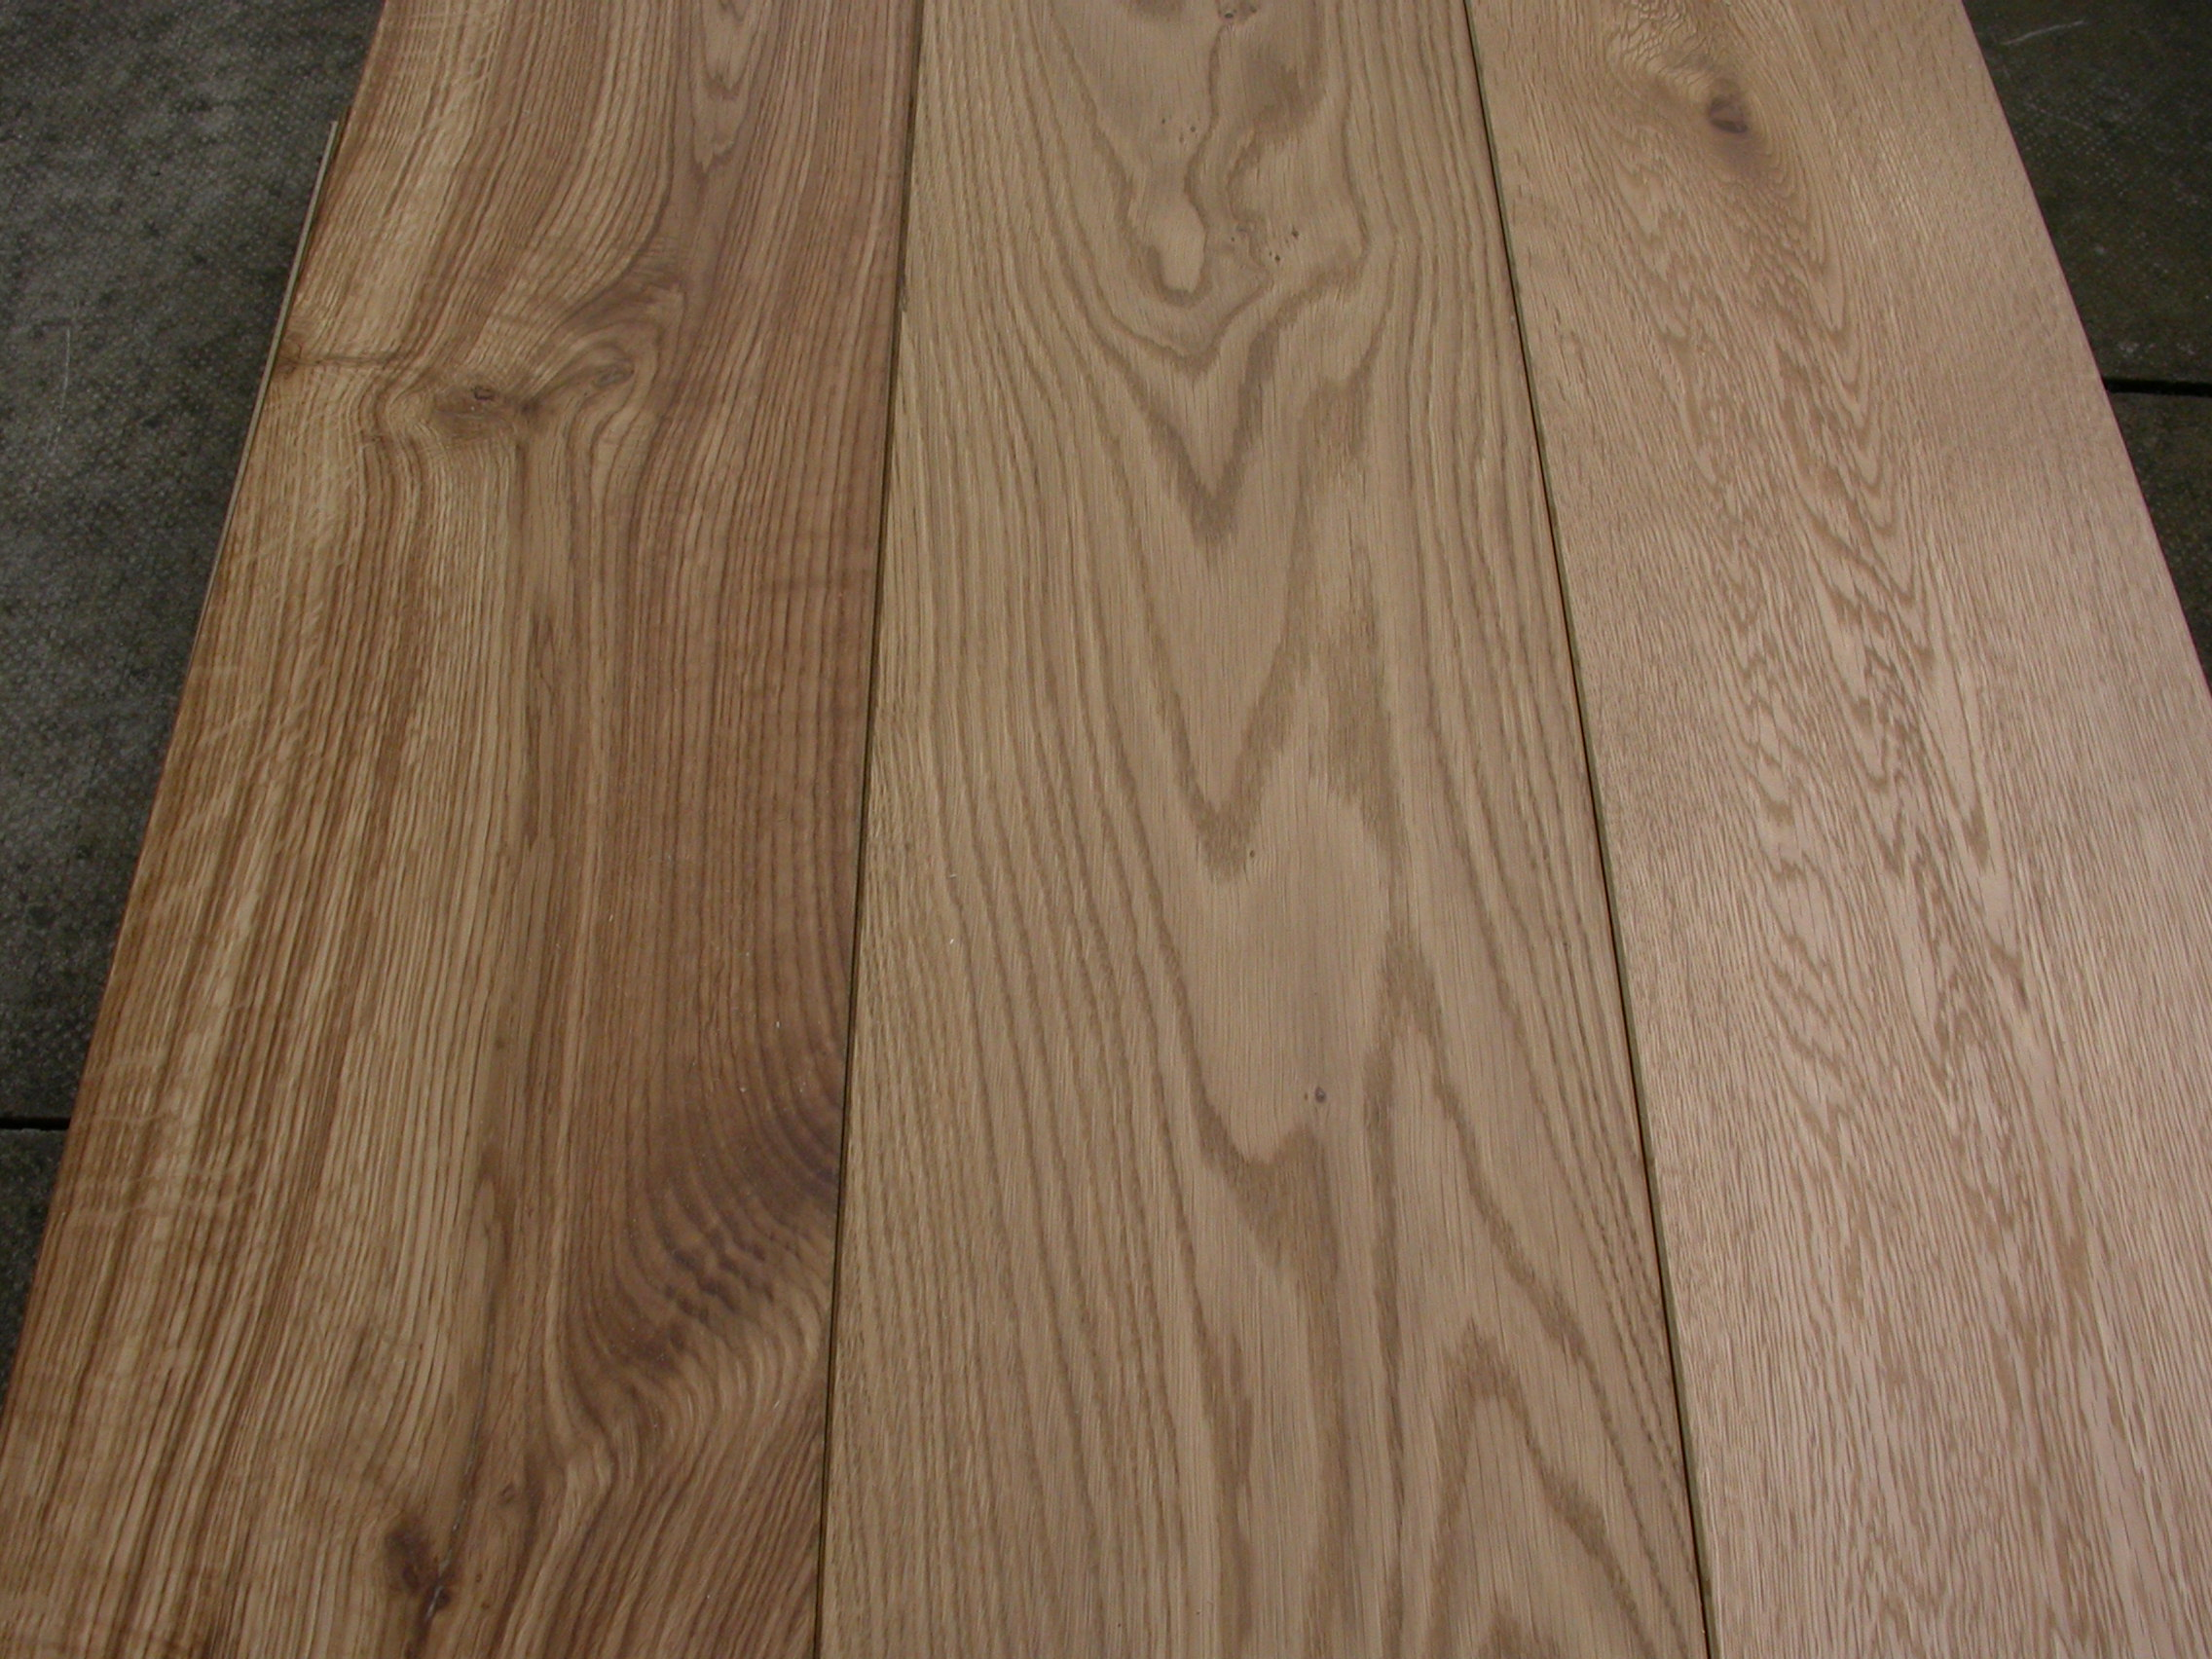 OAK RUSTIC UV OILED 189